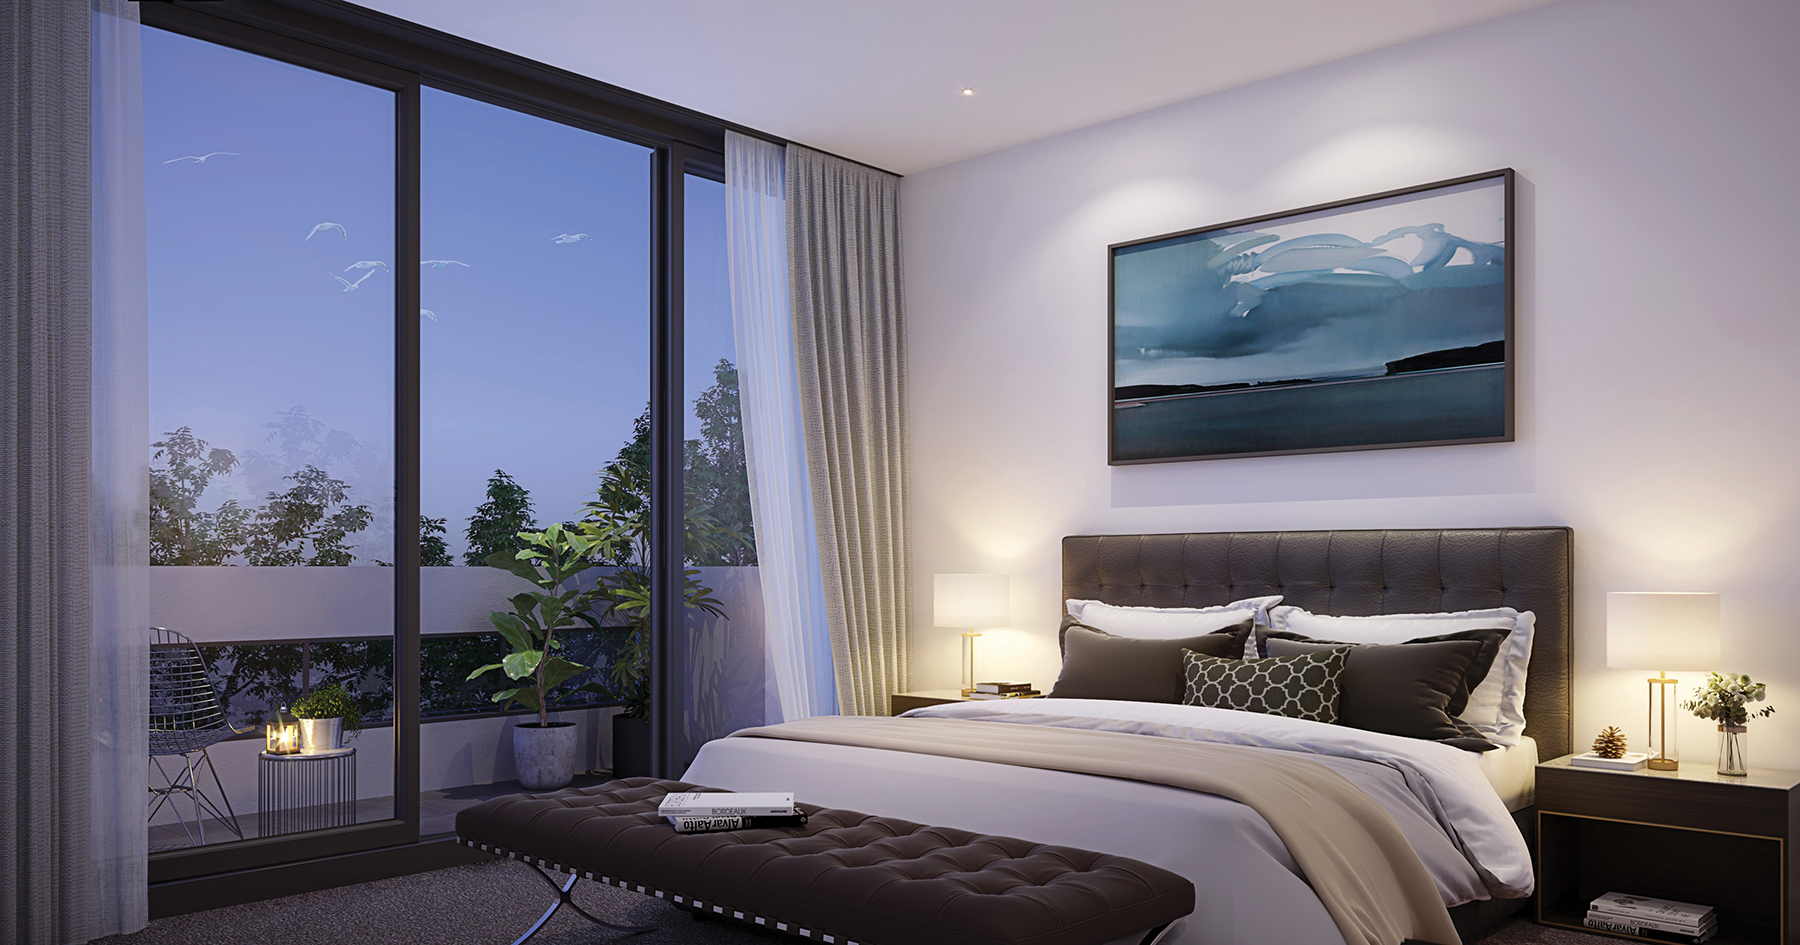 bedroomCGI-new.png